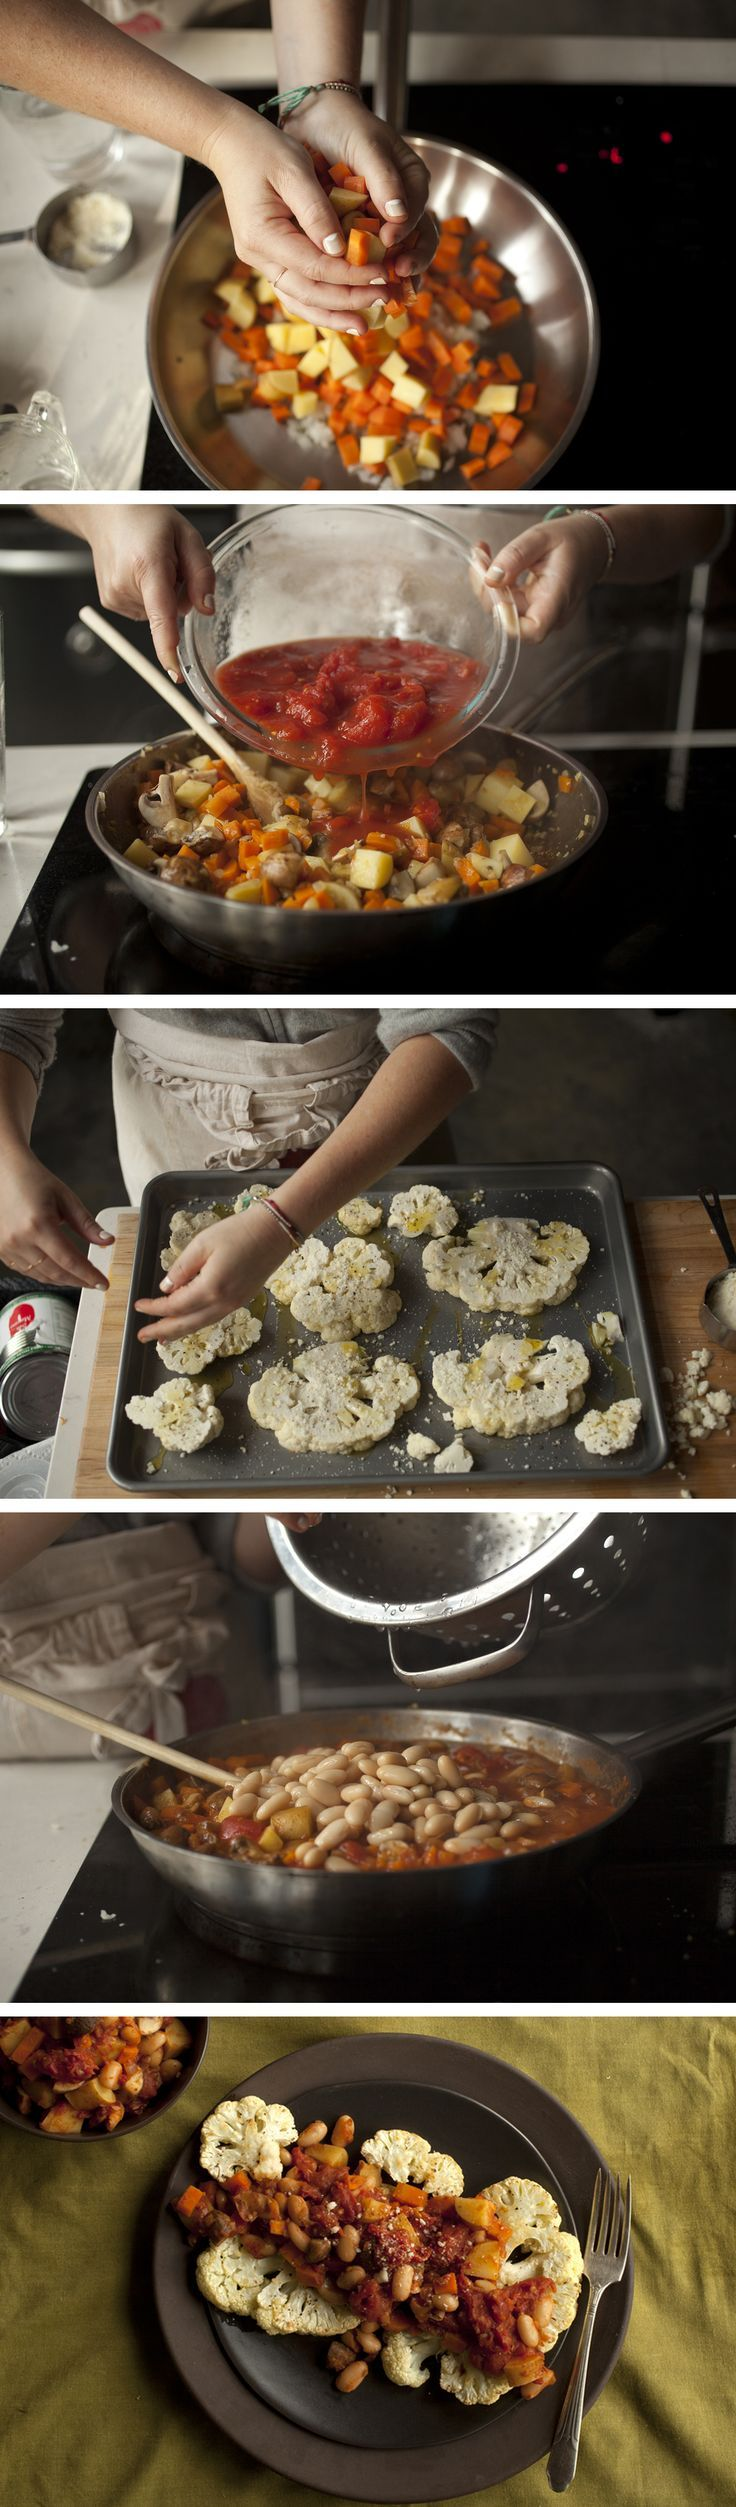 Parmesan Roasted Cauliflower Steaks with Fall Vegetable Ragout by plated